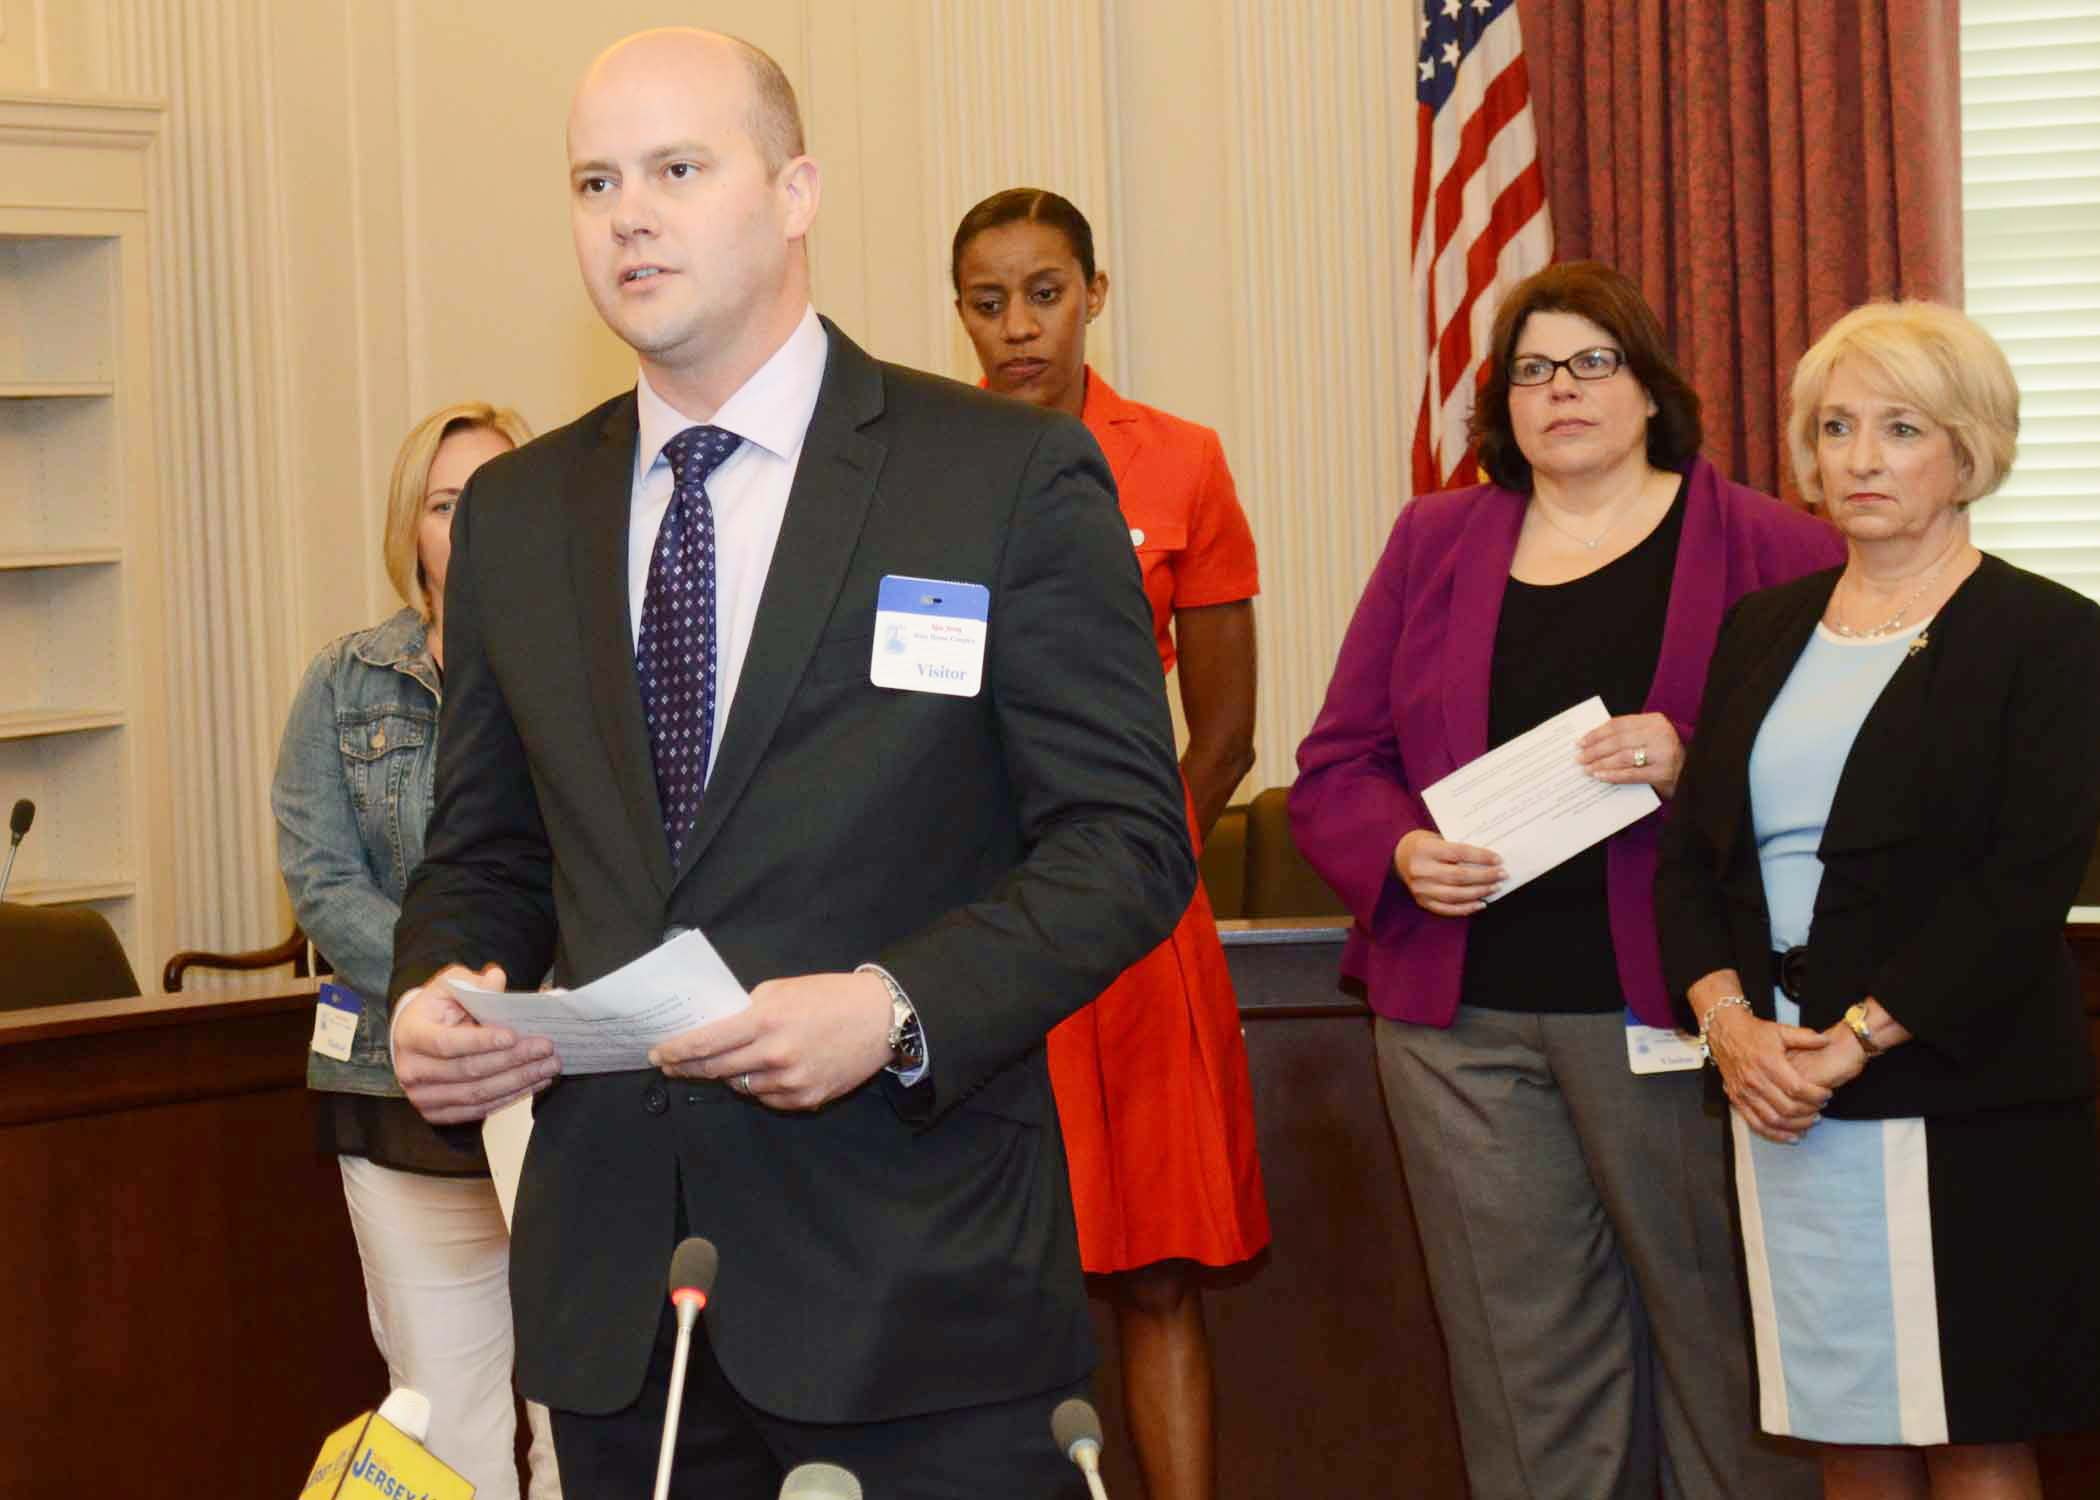 Jonathan Pushman, NJSBA legislative advocate, spoke at a press conference held by Assemblyman Troy Singleton to promote A-3798, a bill that would authorize the use of school bus monitoring systems to catch motorists who illegally pass school buses when the flashing light and crossing control arm of a school bus are activated.